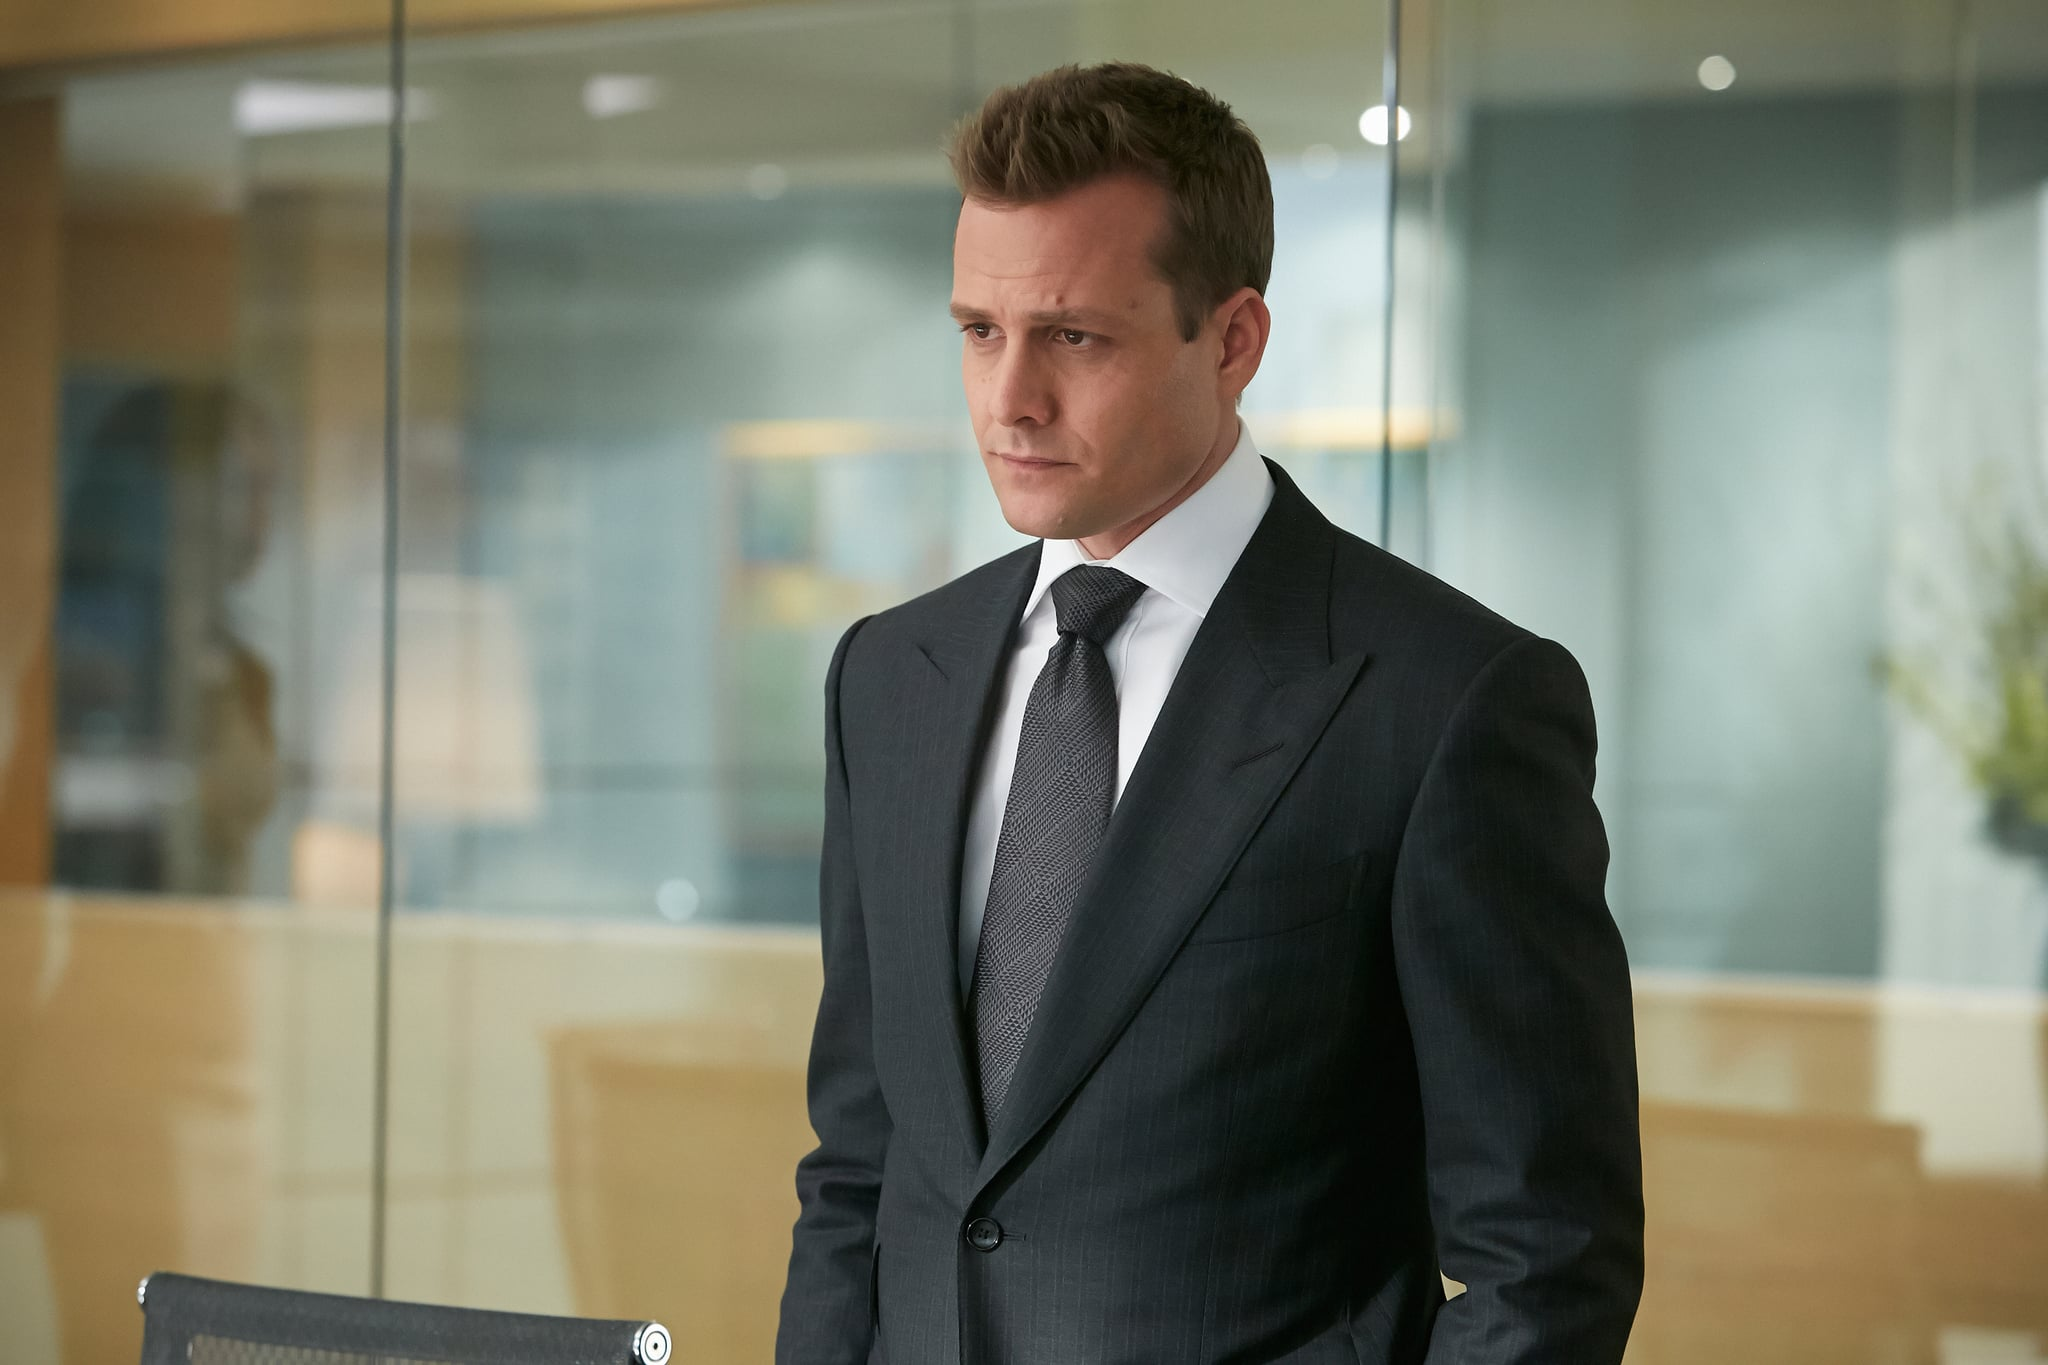 SUITS, Gabriel Macht in 'One-Two-Three-Go' (Season 4, Episode 1, aired June 11, 2014). ph: Ian Watson/USA Network/courtesy Everett Collection